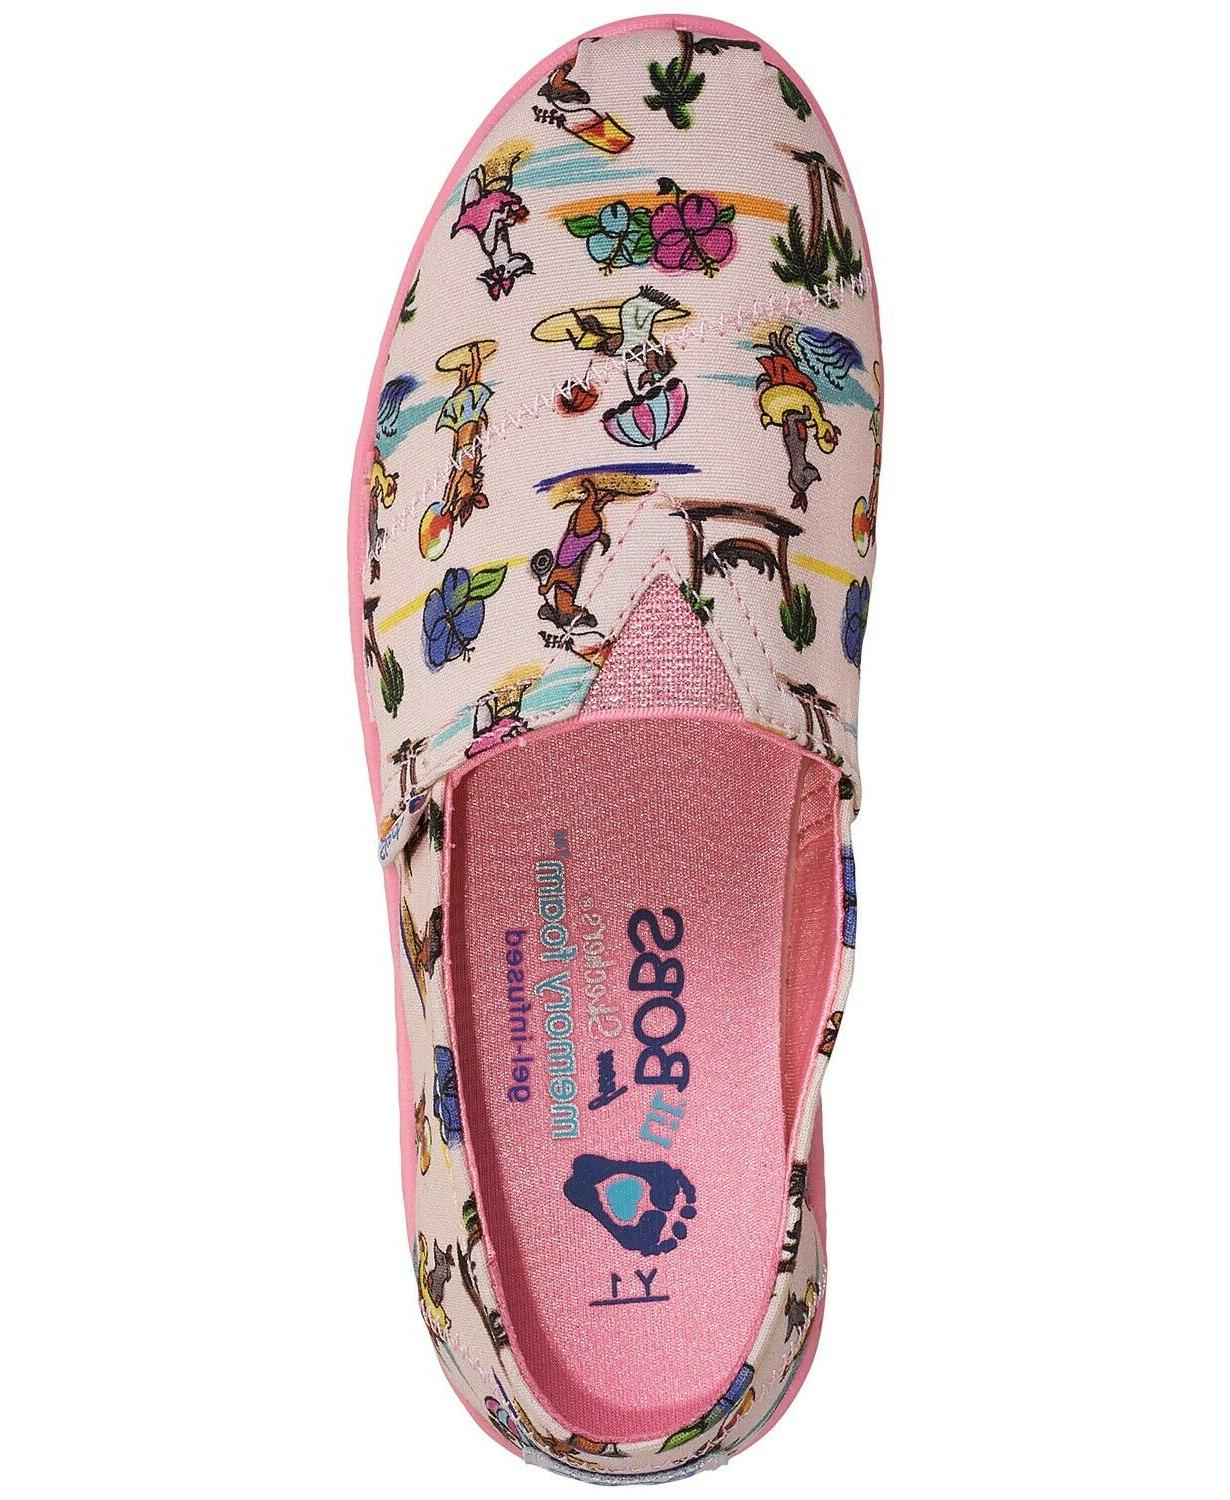 Skechers Lil' BOBS Solstice 2.0 Pups Slip-On Casual